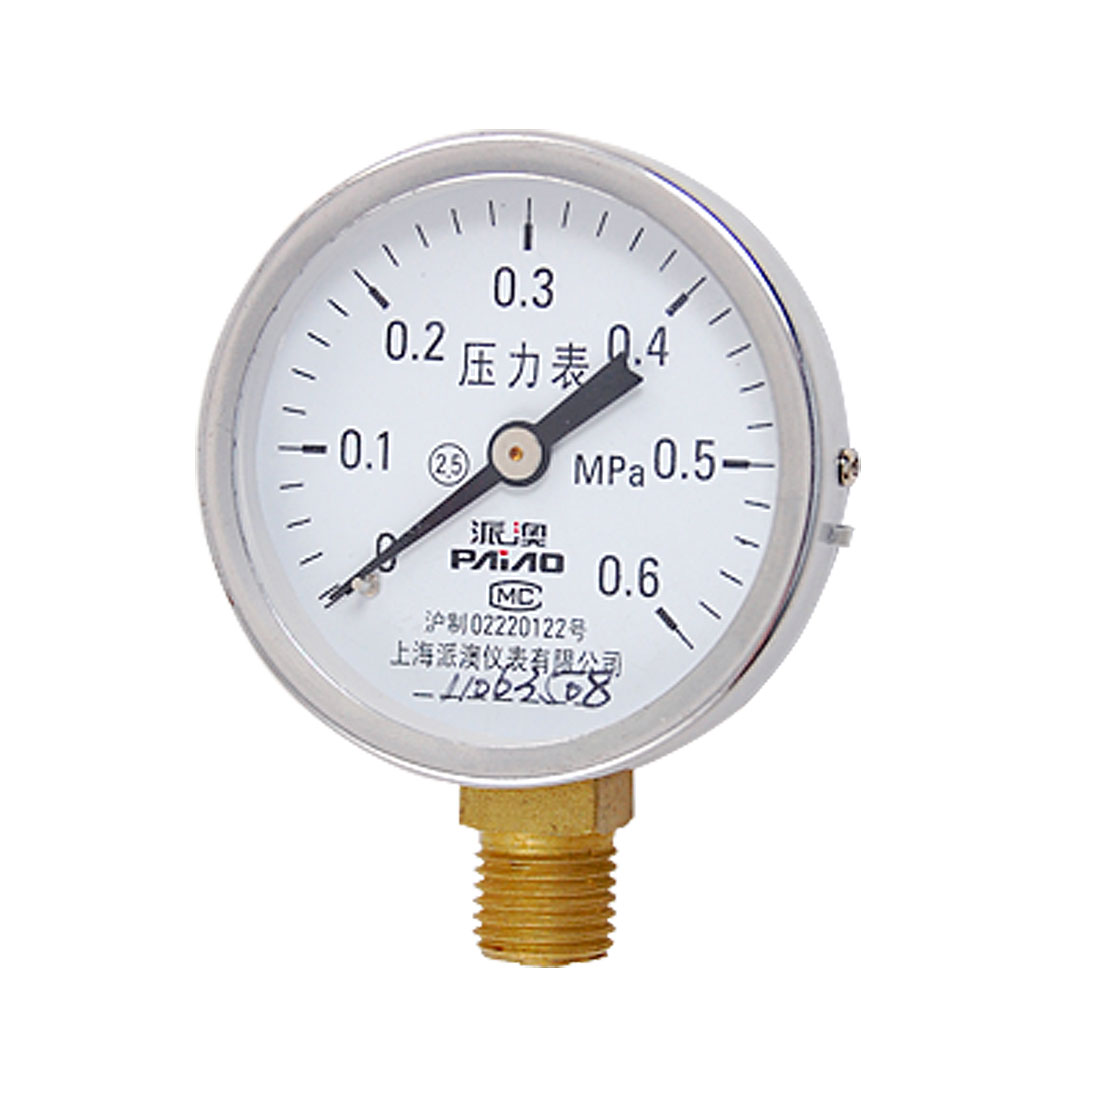 Pneumatic System Y-60 Series Air Pressure Test Gauge 0-0.6MPa